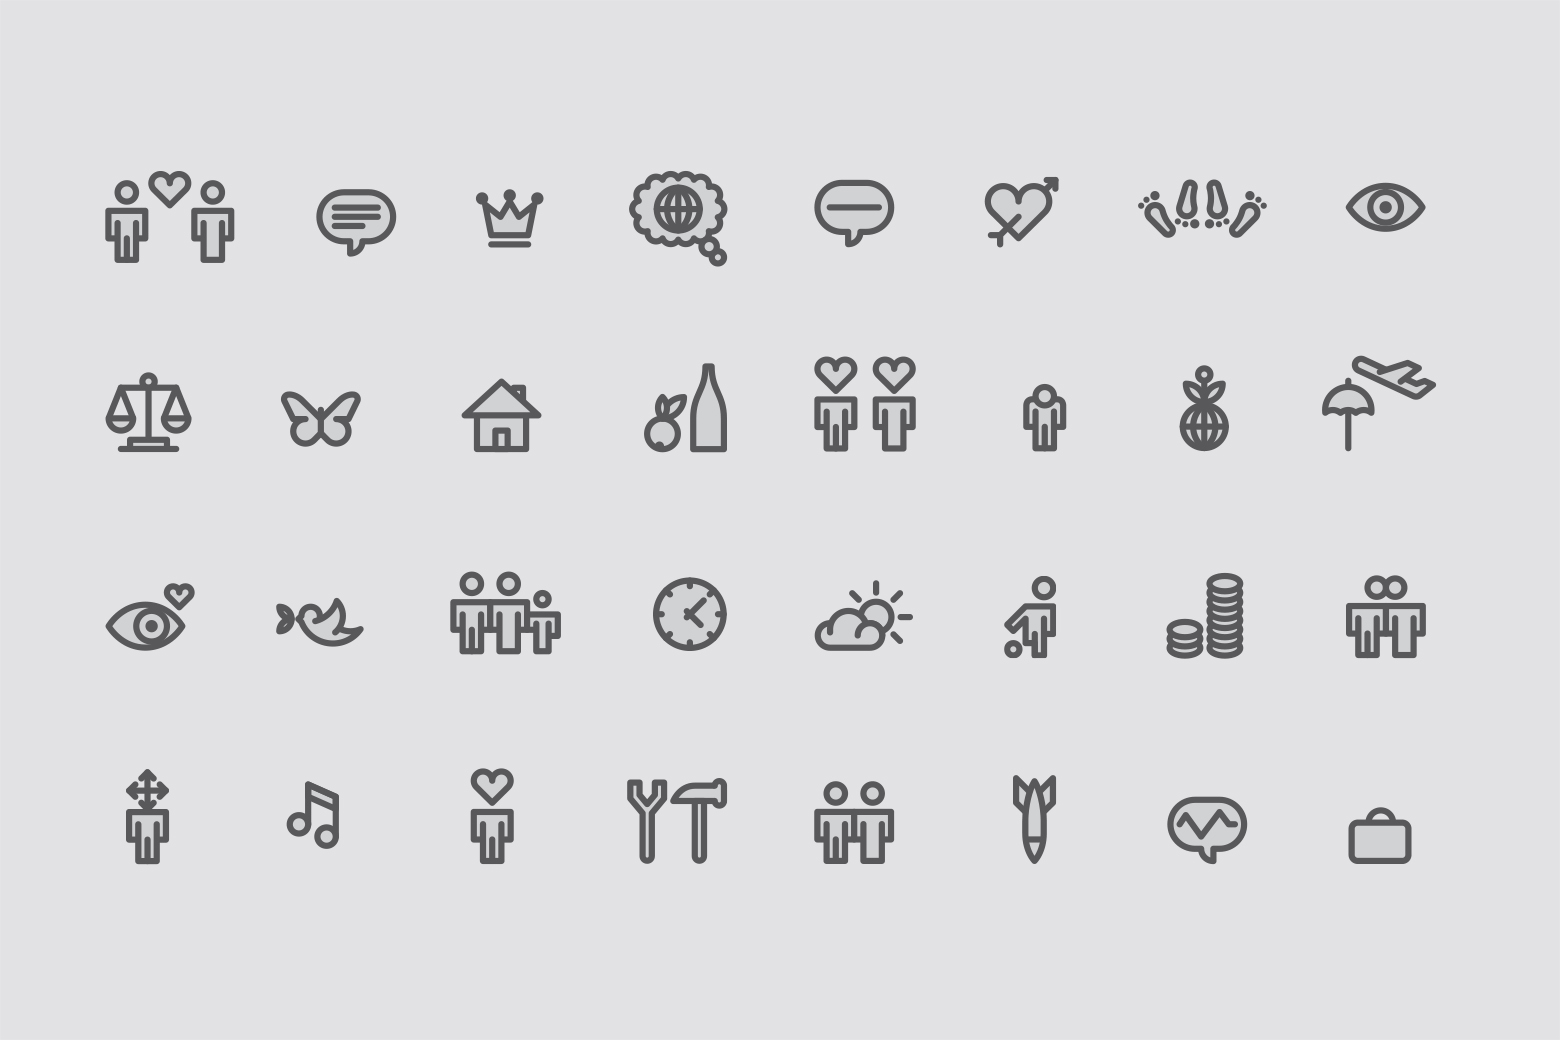 IKK_pictograms_02